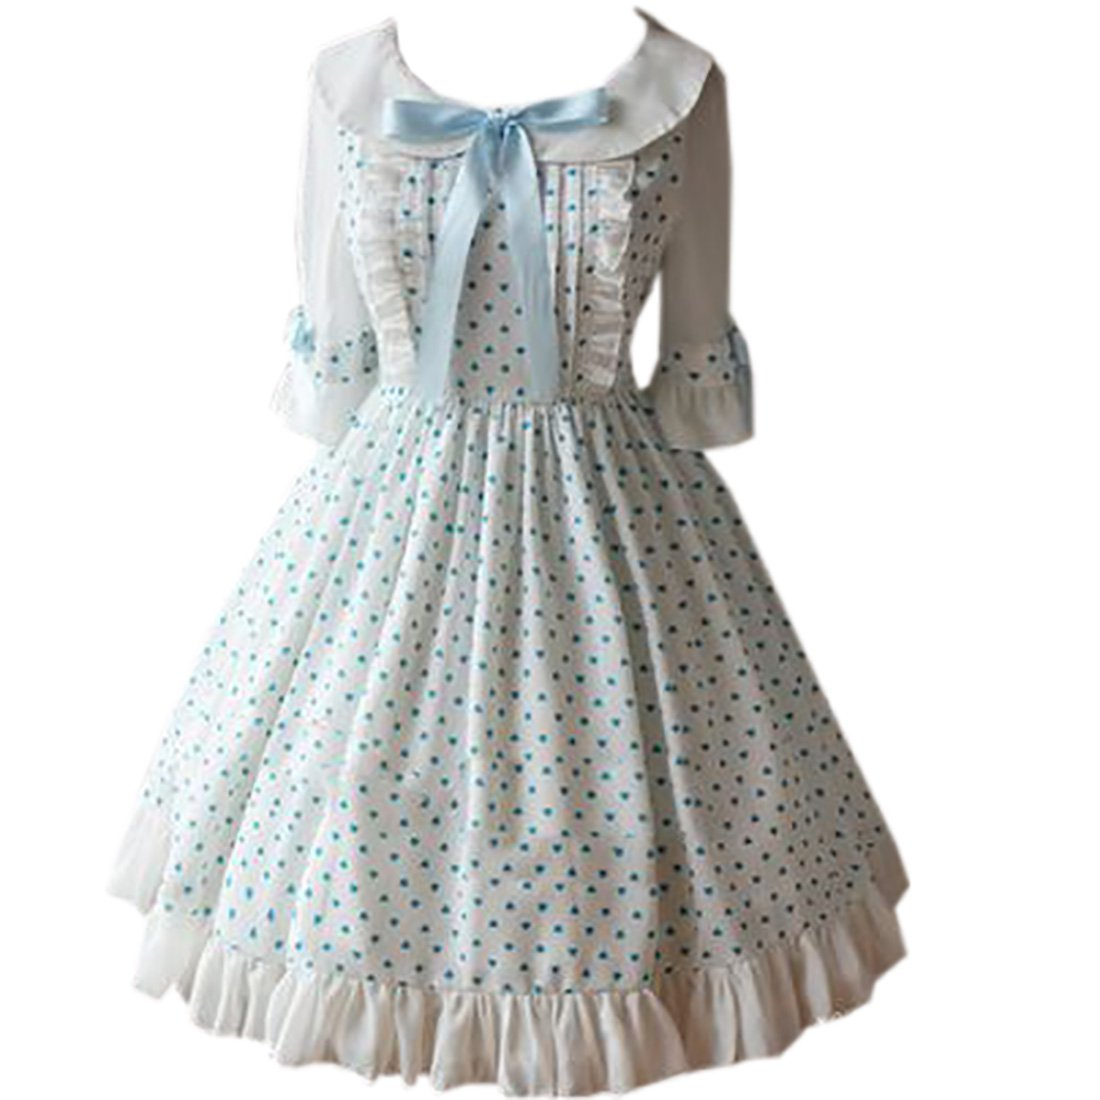 Partiss Women's Sweet Chiffon Turndown Collar Print Lolita Dress Light Blue FY1790913-8